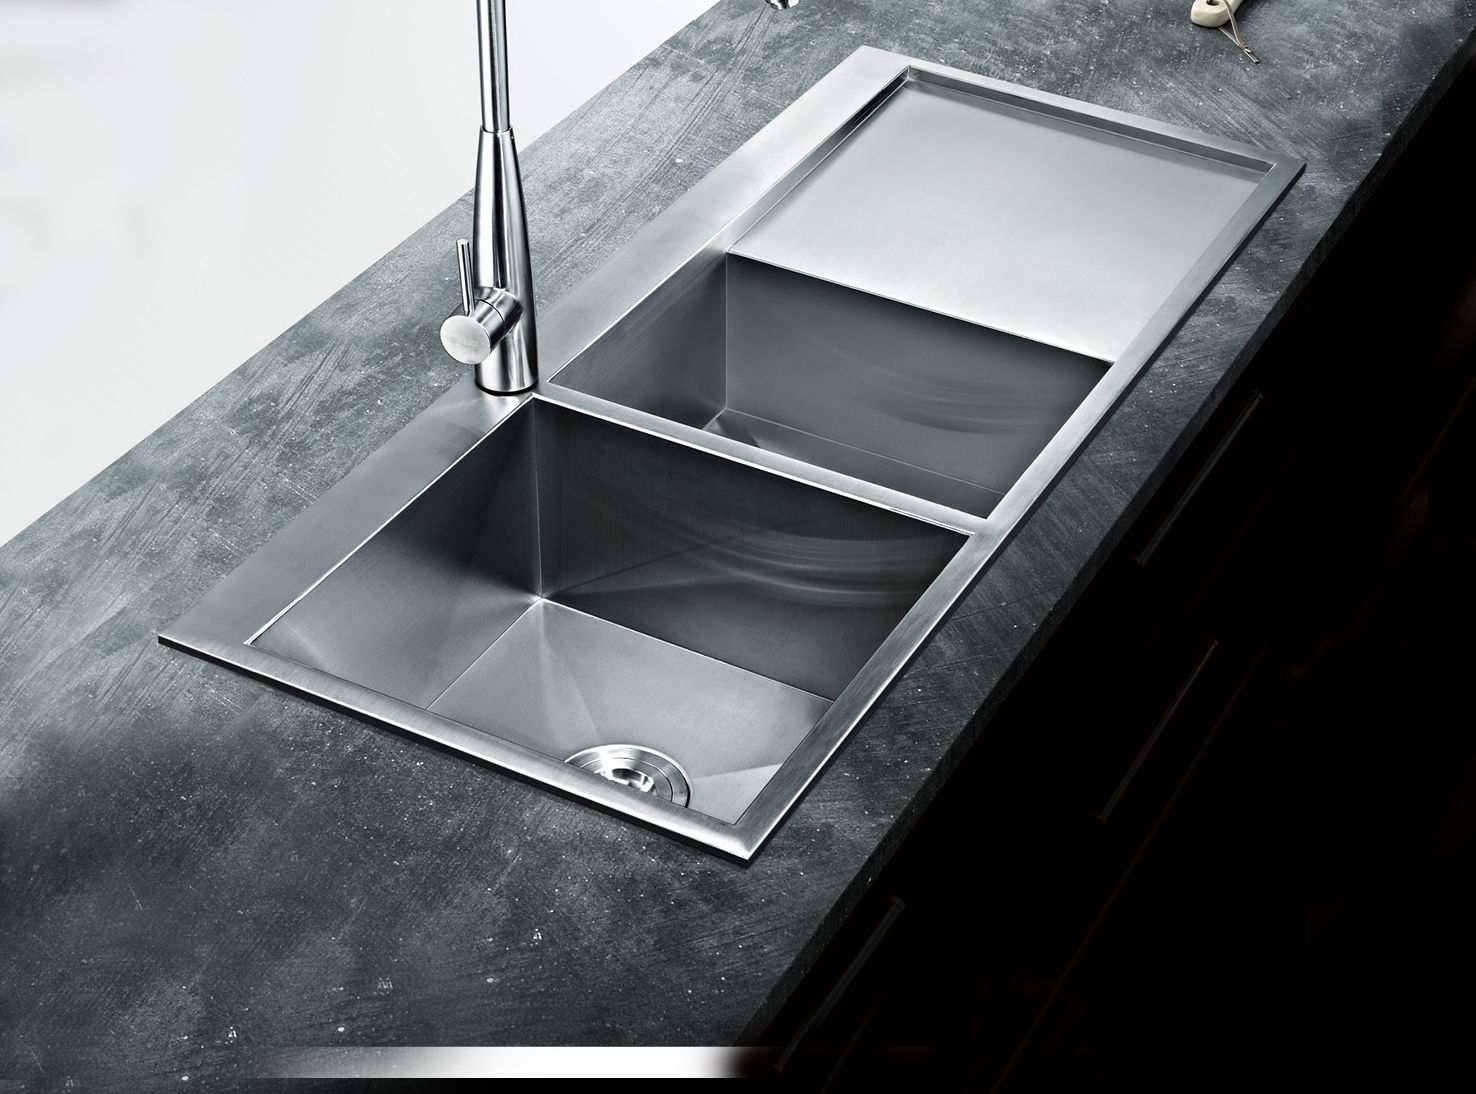 Laguna Single And A Small Countertop Sink With Drainer 1000x510x220mm  Includes Colander U0026 Prep Board Accessories